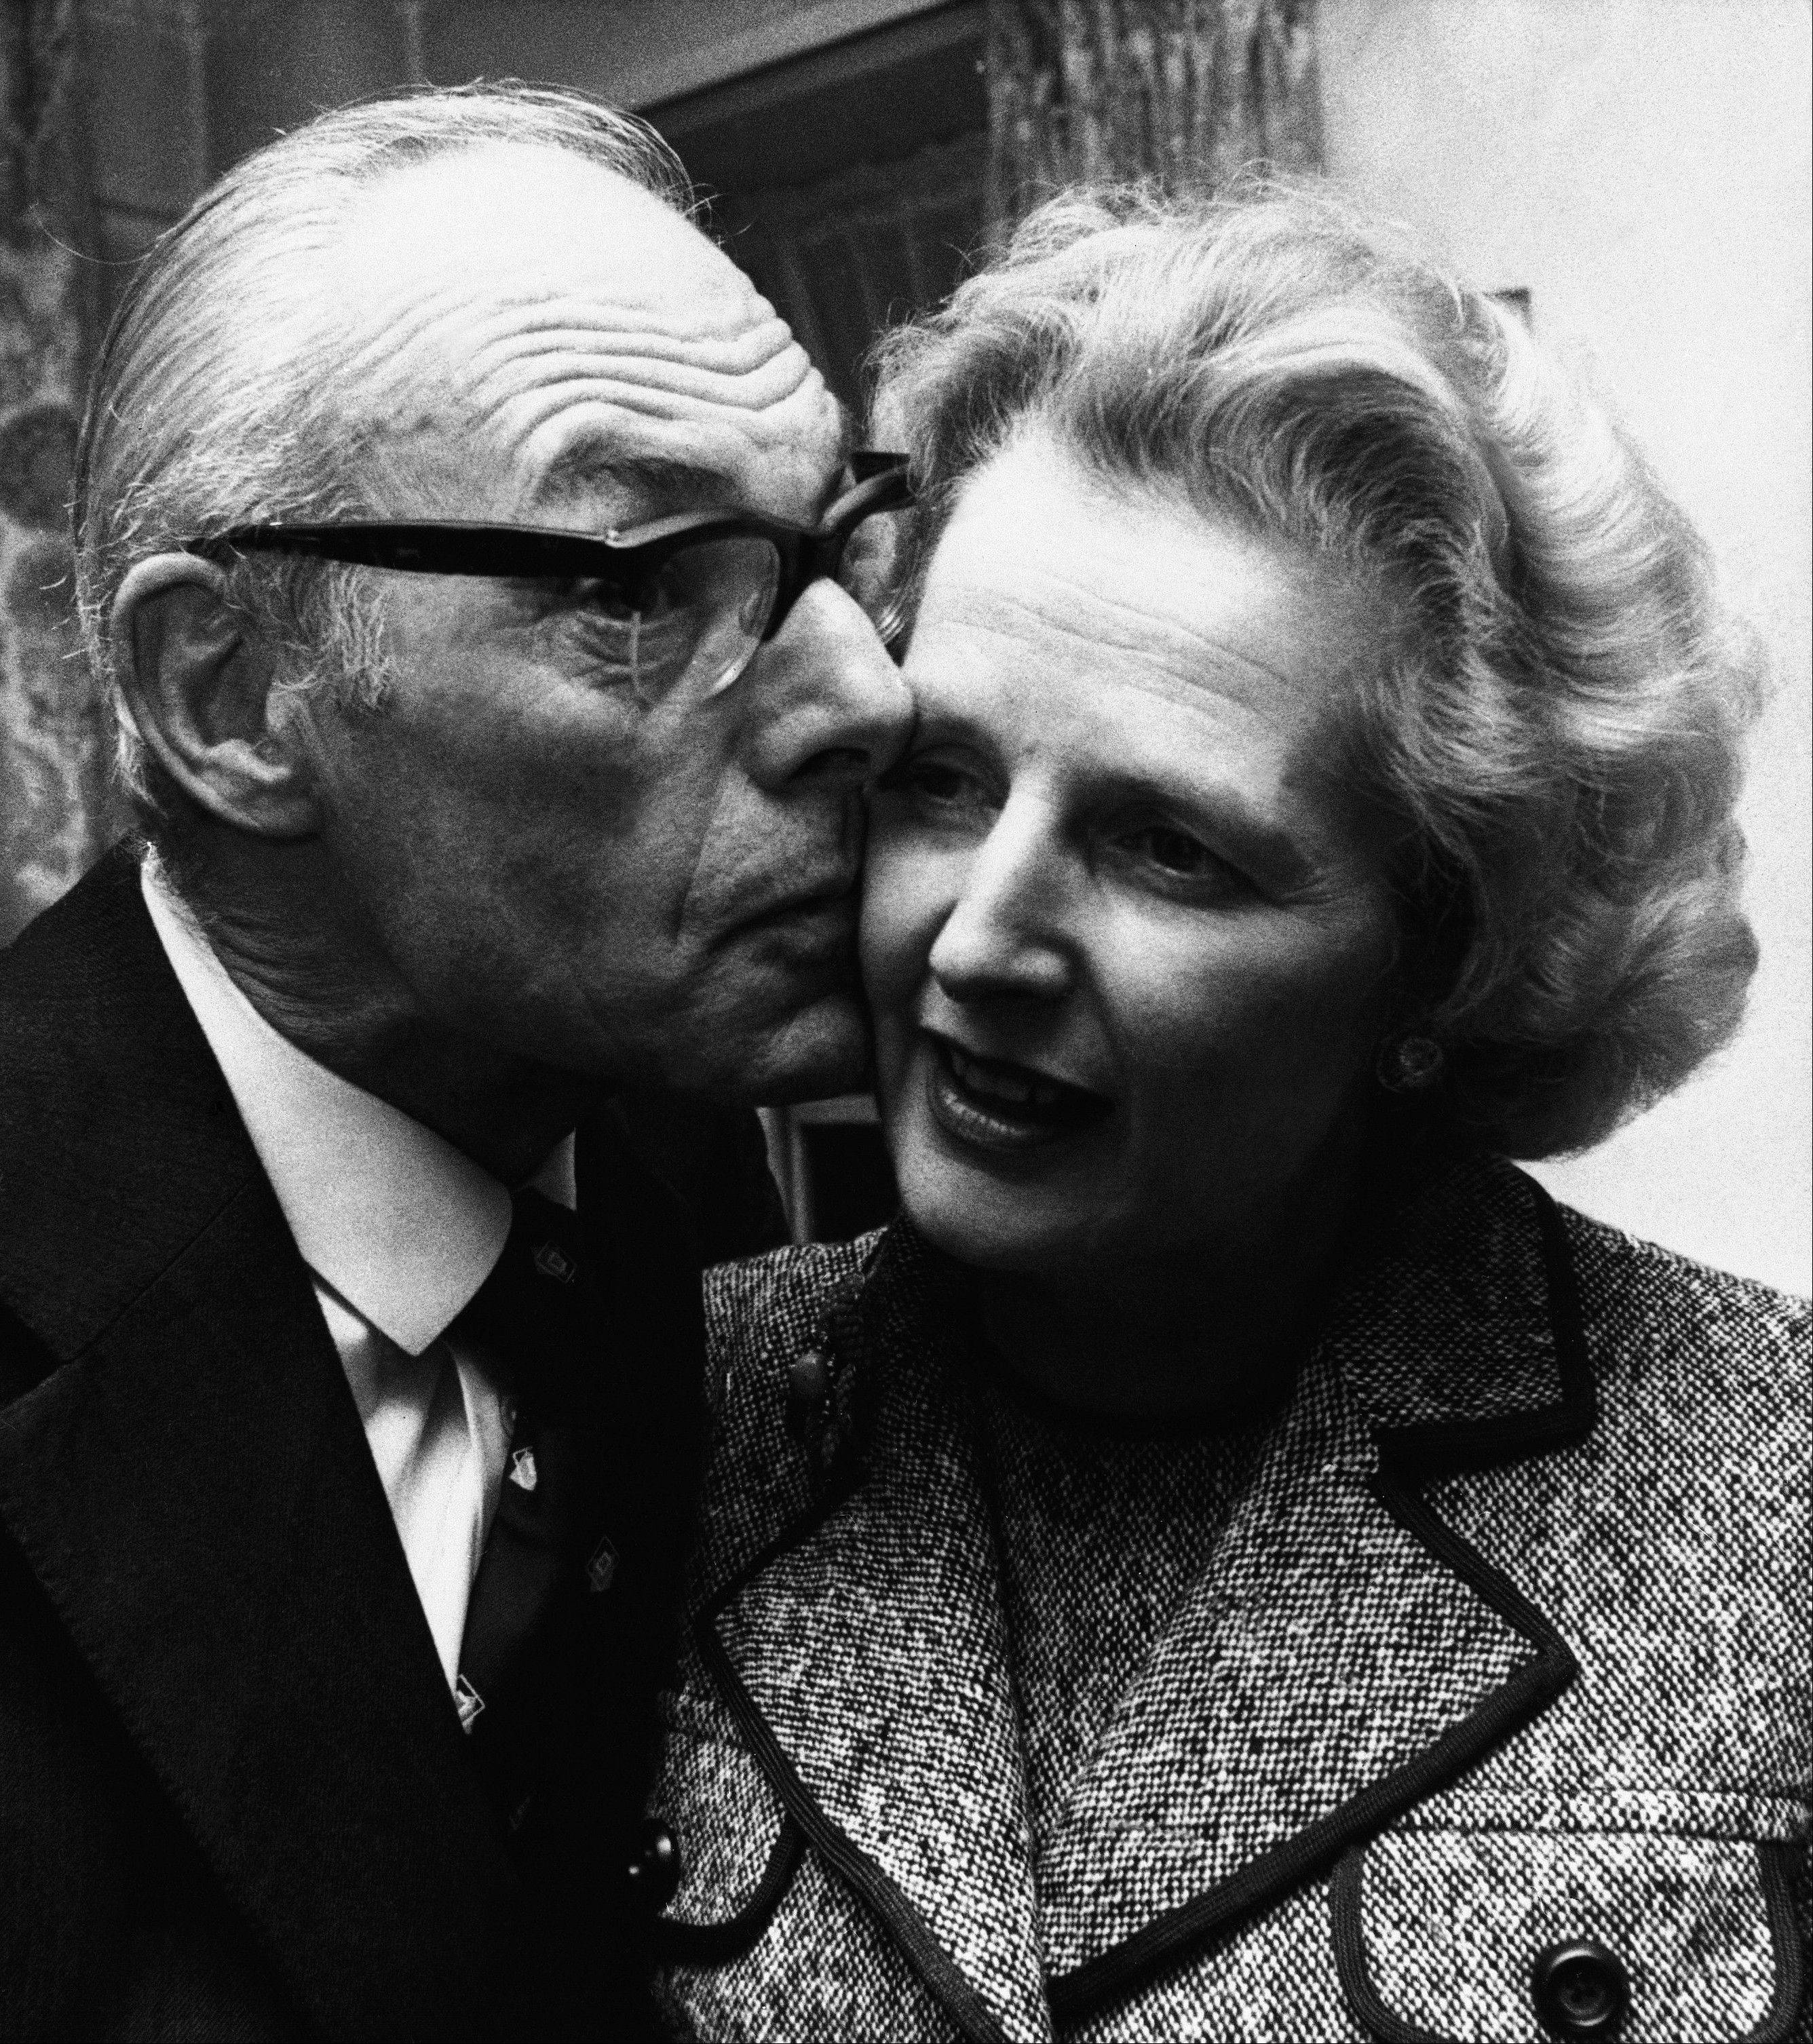 In a Feb. 4, 1975 file photo, Margaret Thatcher gets a kiss from her husband Denis in London, Feb. 4, 1975, after she had come out on top with 130 votes in the first round of the election for the Conservative party leadership. Thatchers former spokesman, Tim Bell, said that the former British Prime Minister Margaret Thatcher had died Monday morning, April 8, 2013, of a stroke. She was 87 years old.